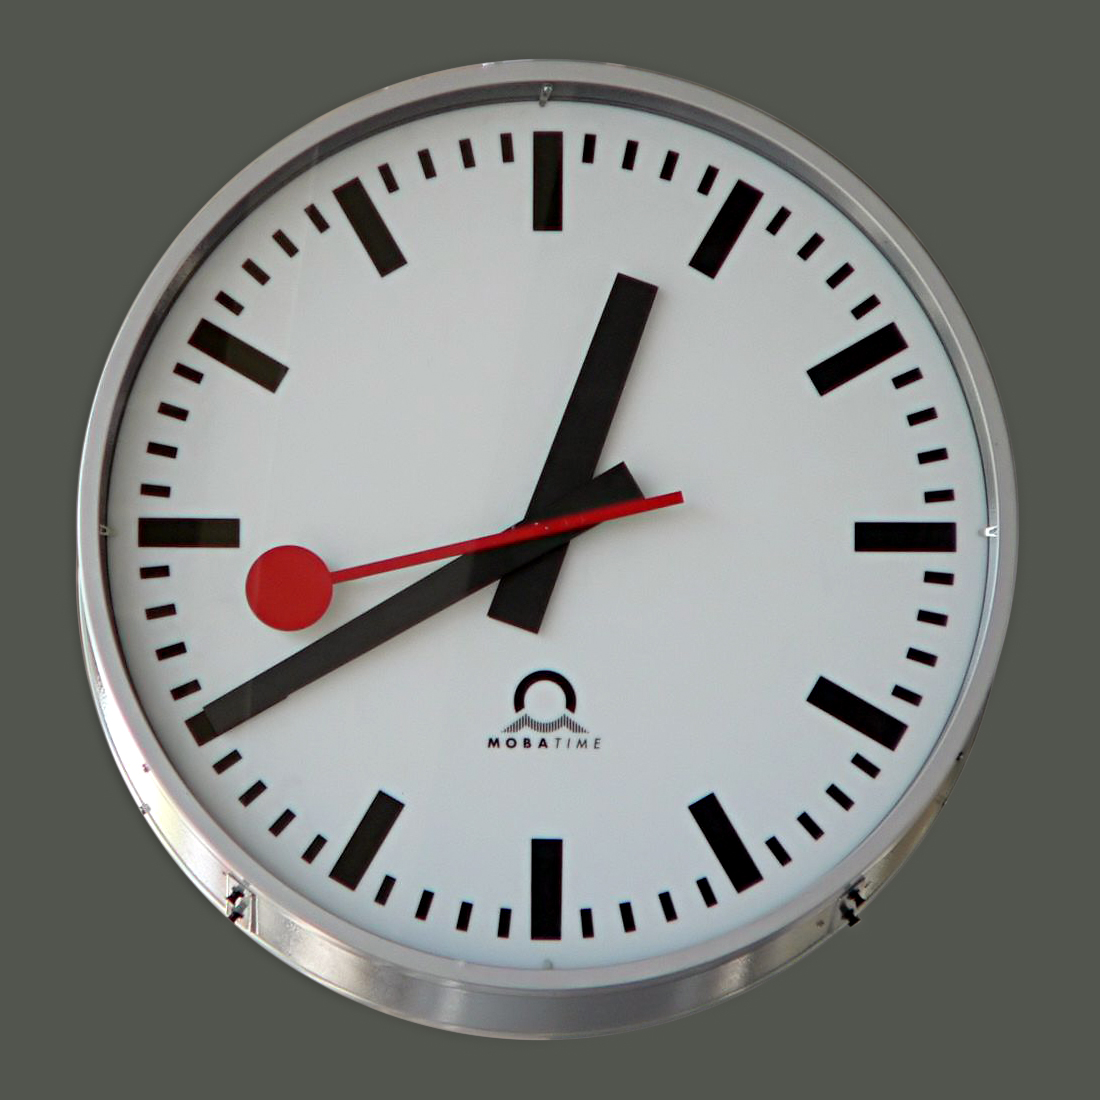 Swiss railway clock wikipedia - Swiss railway wall clock ...